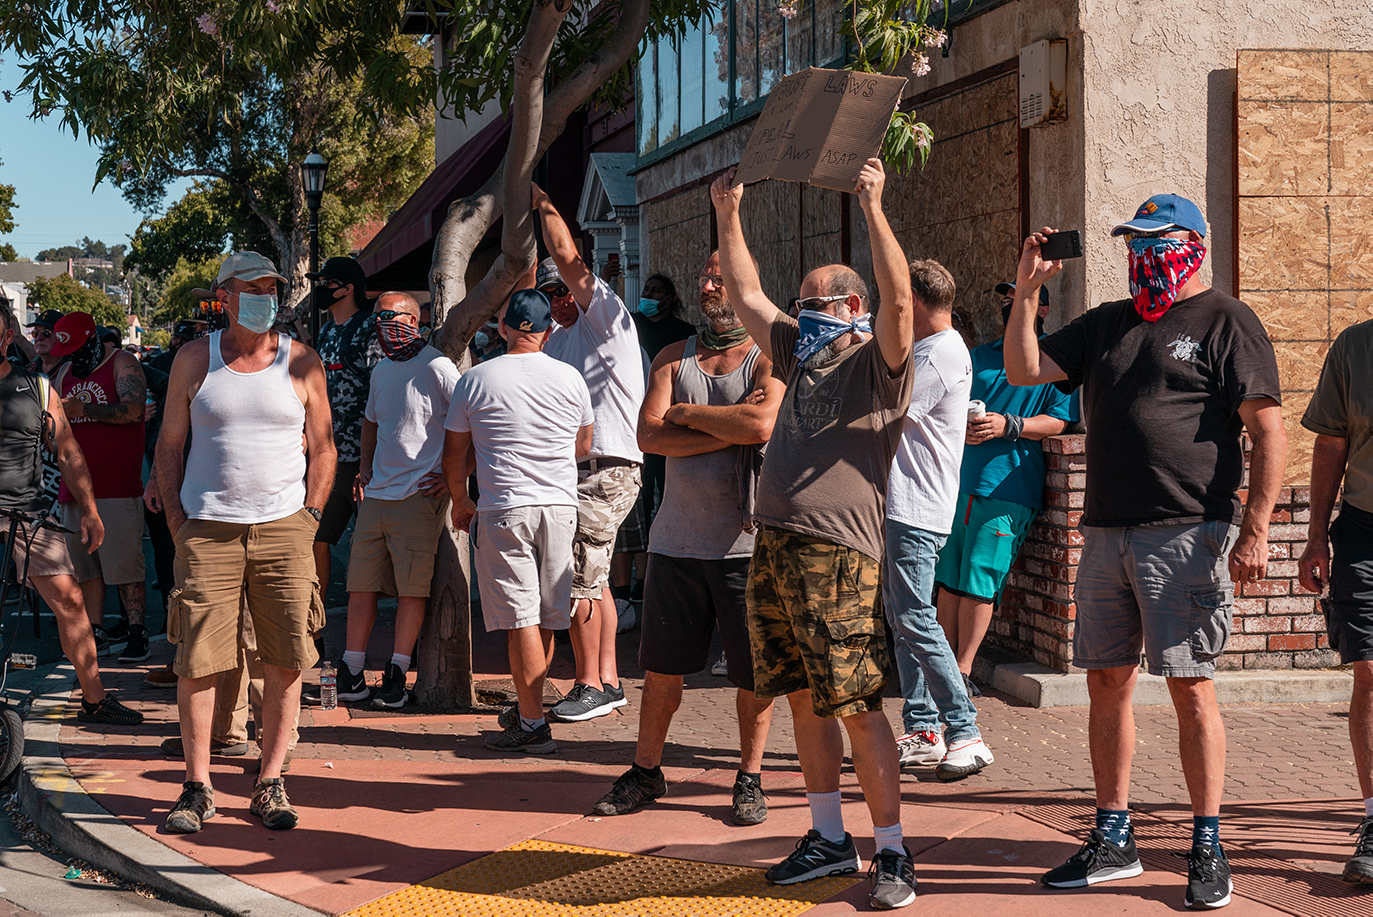 A group of counter-protesters watches as several hundred march from the Contra Costa County Courthouse to the Waterfront Park in Martinez, Calif., on Sunday, July 12, 2020.